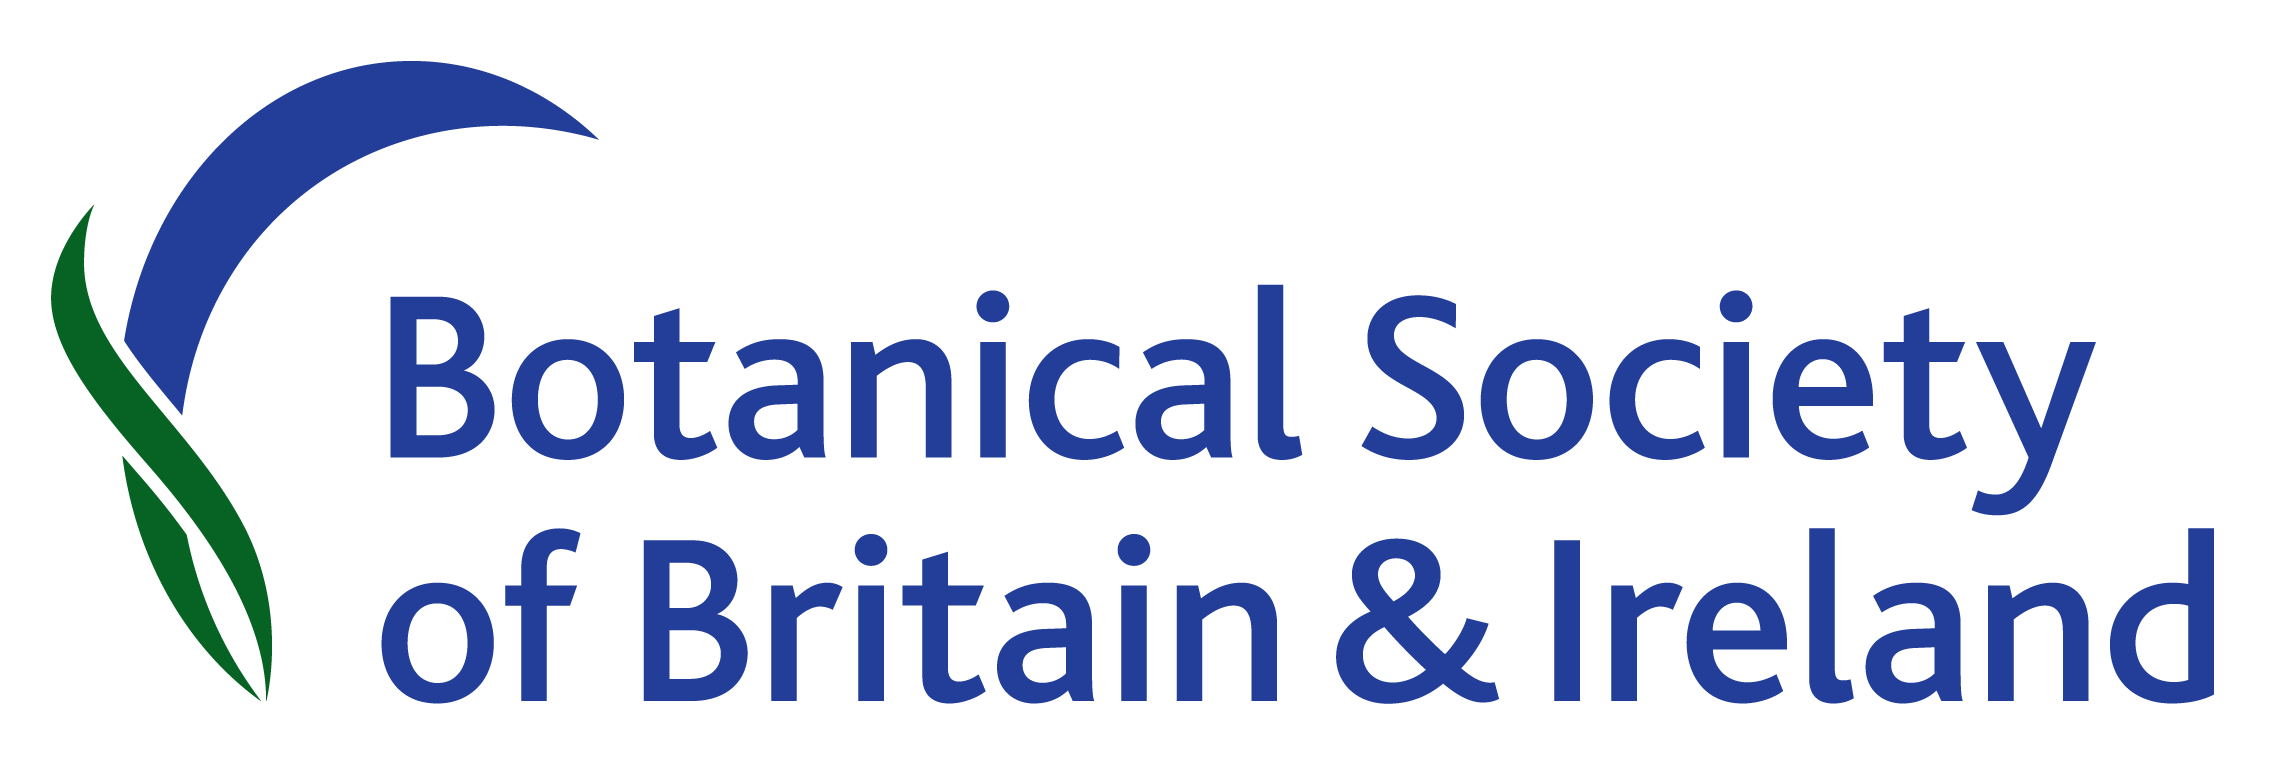 Botanical Society of the British Isles